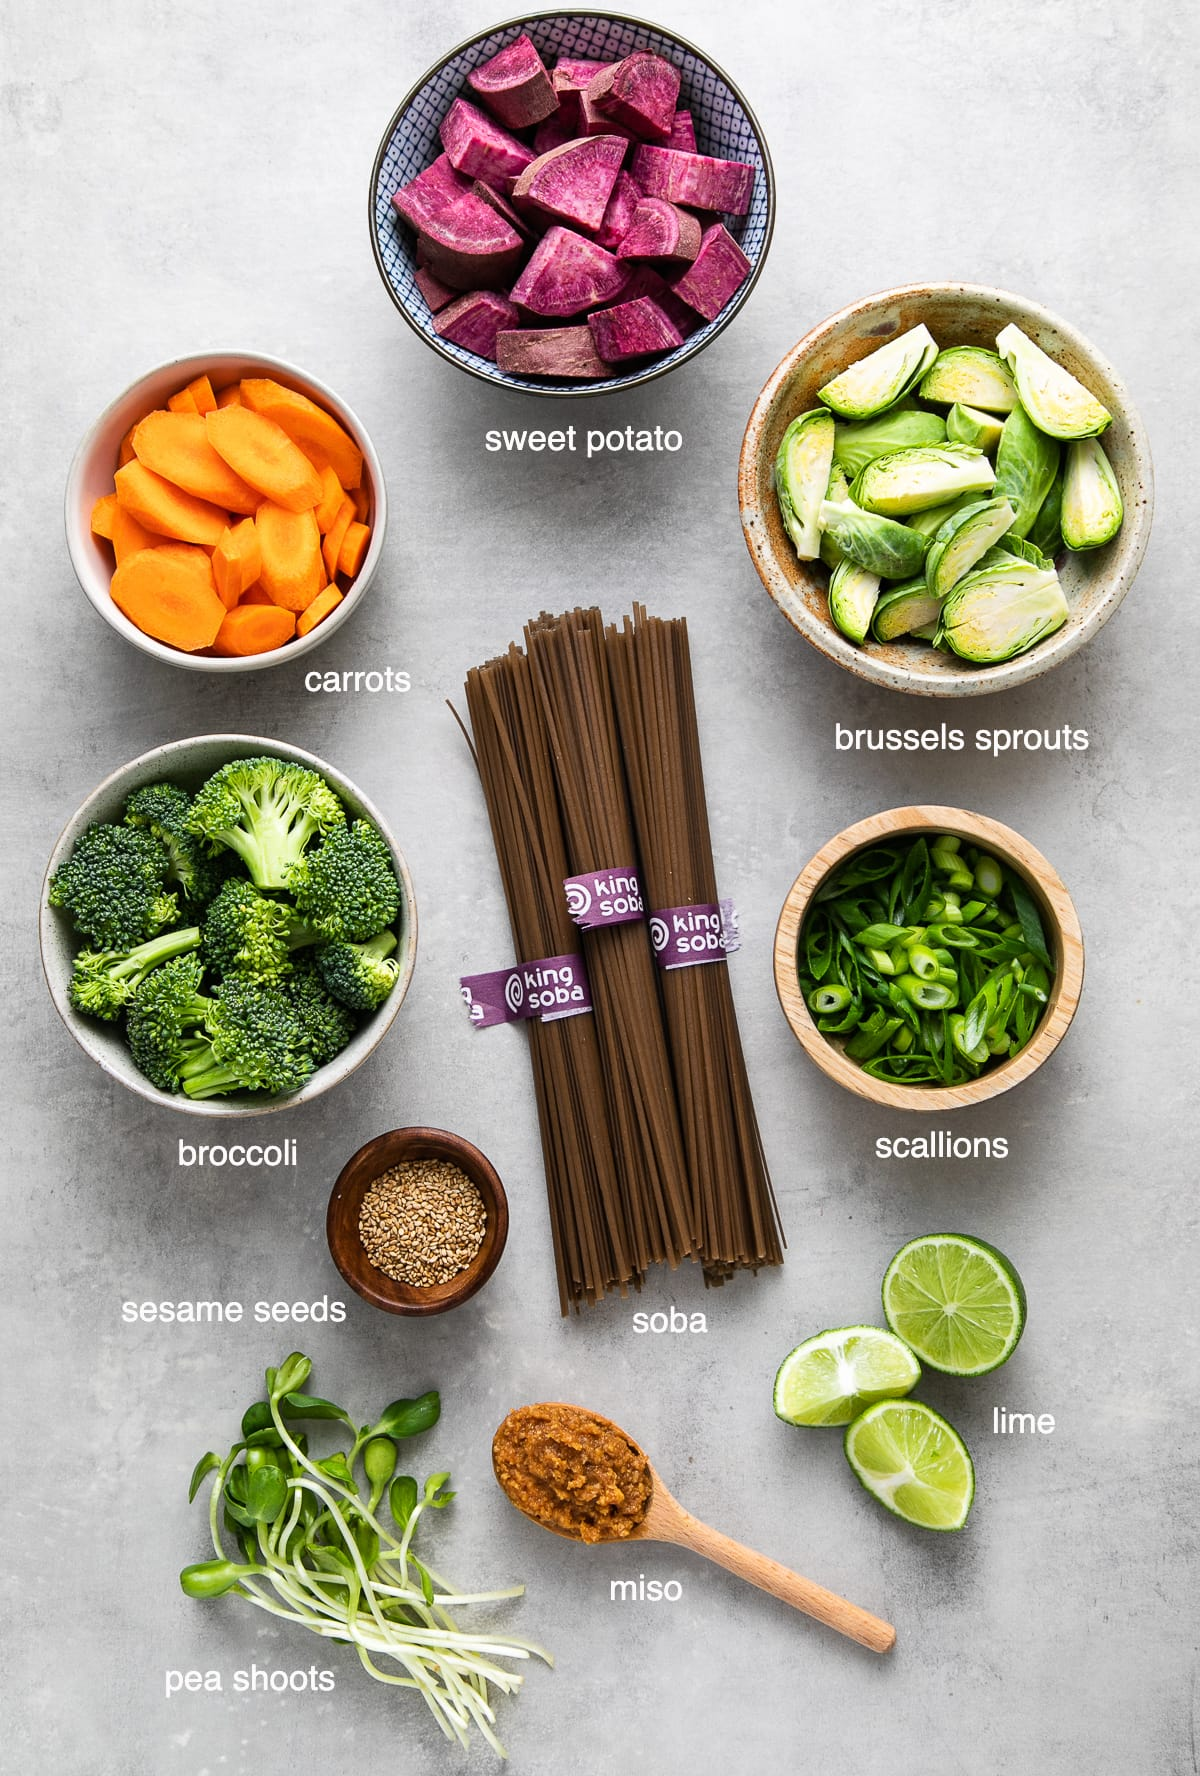 top down view of ingredients used to make soba miso soup with vegetables.